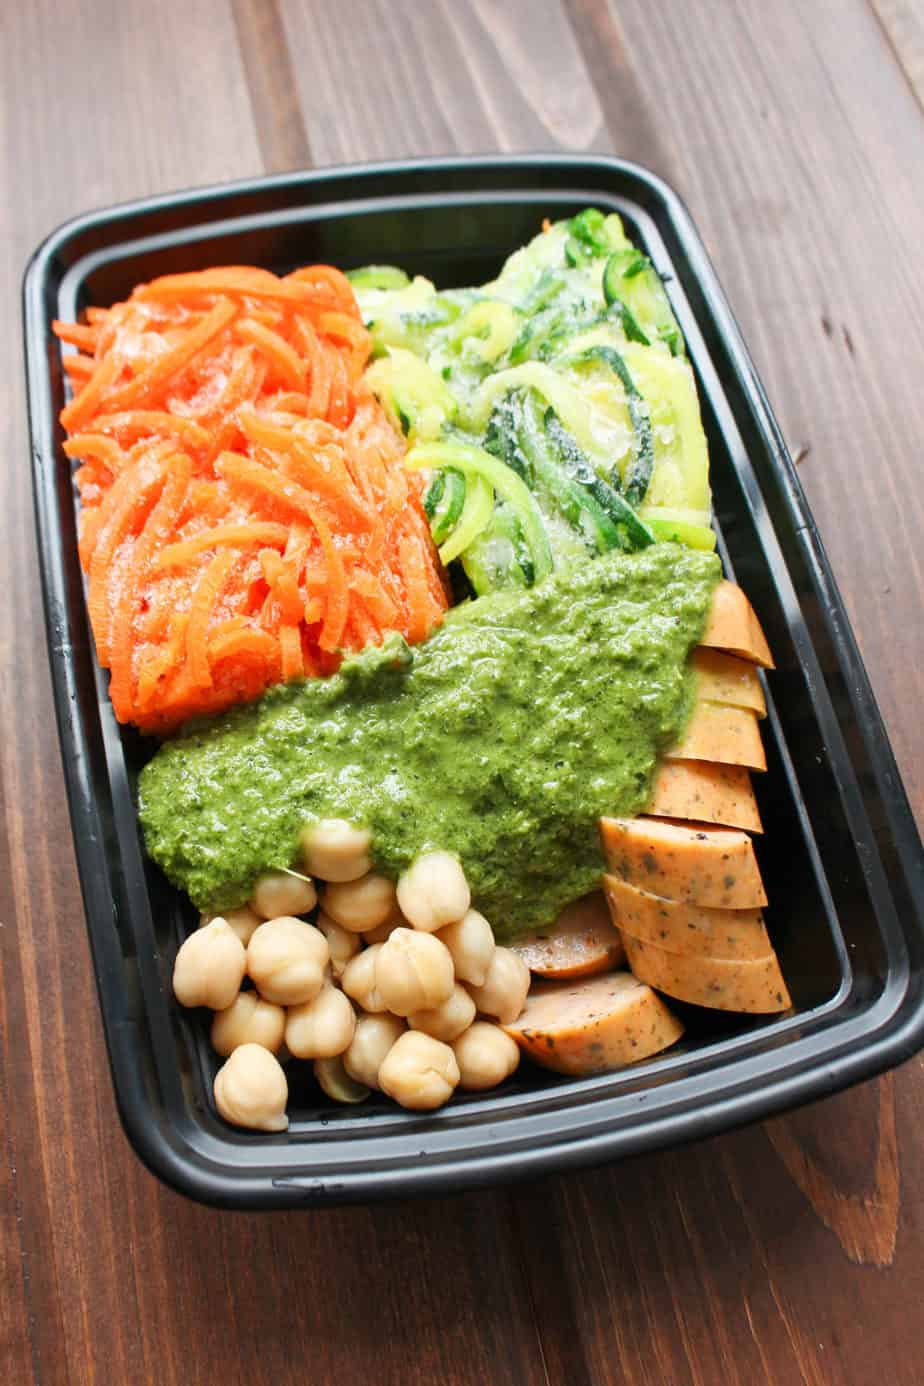 Pesto Veggie Noodles Frozen Meal Prep | Frugal Nutrition